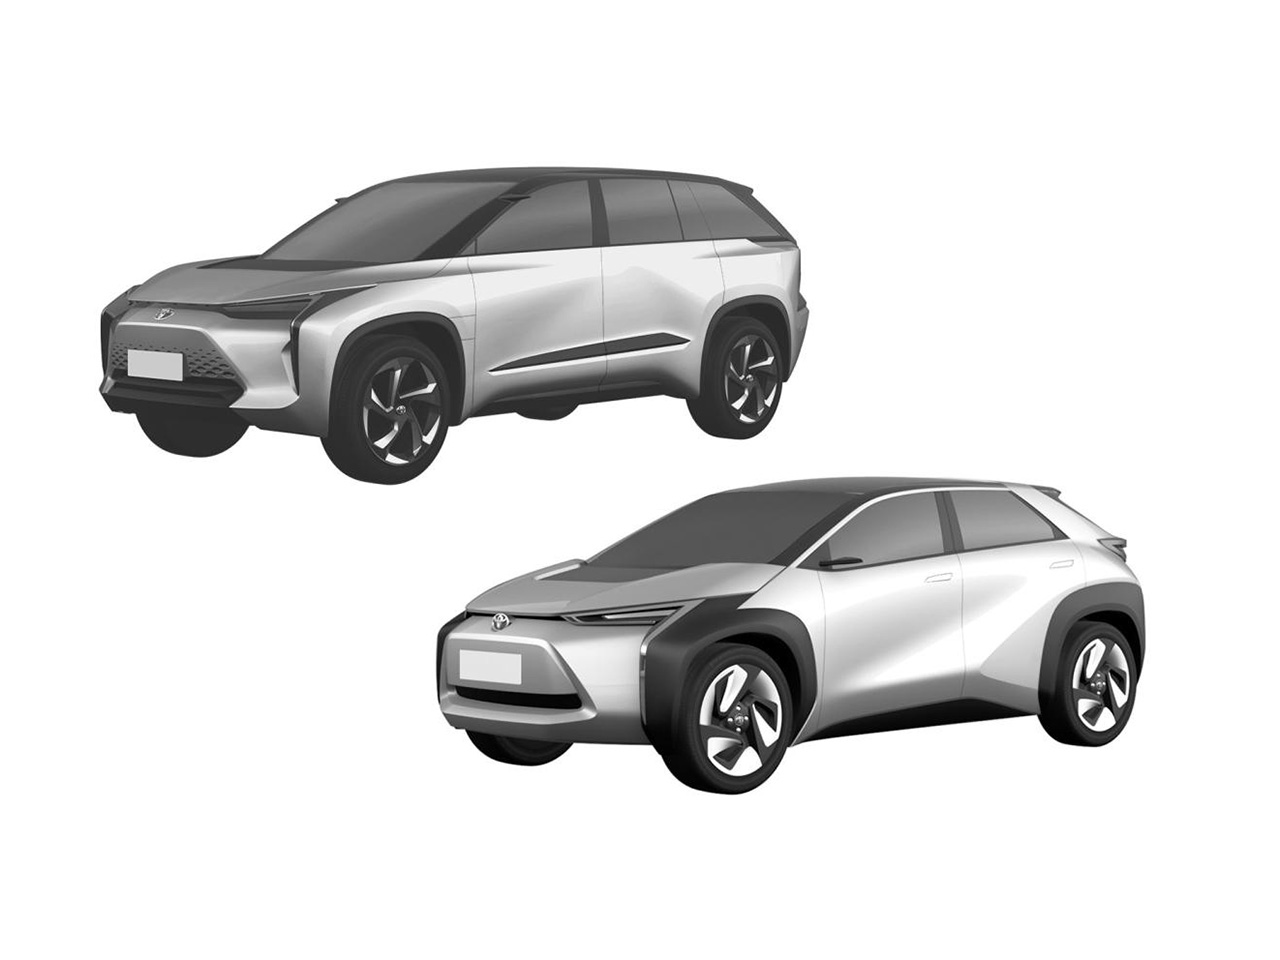 Toyota's upcoming electric crossovers in China